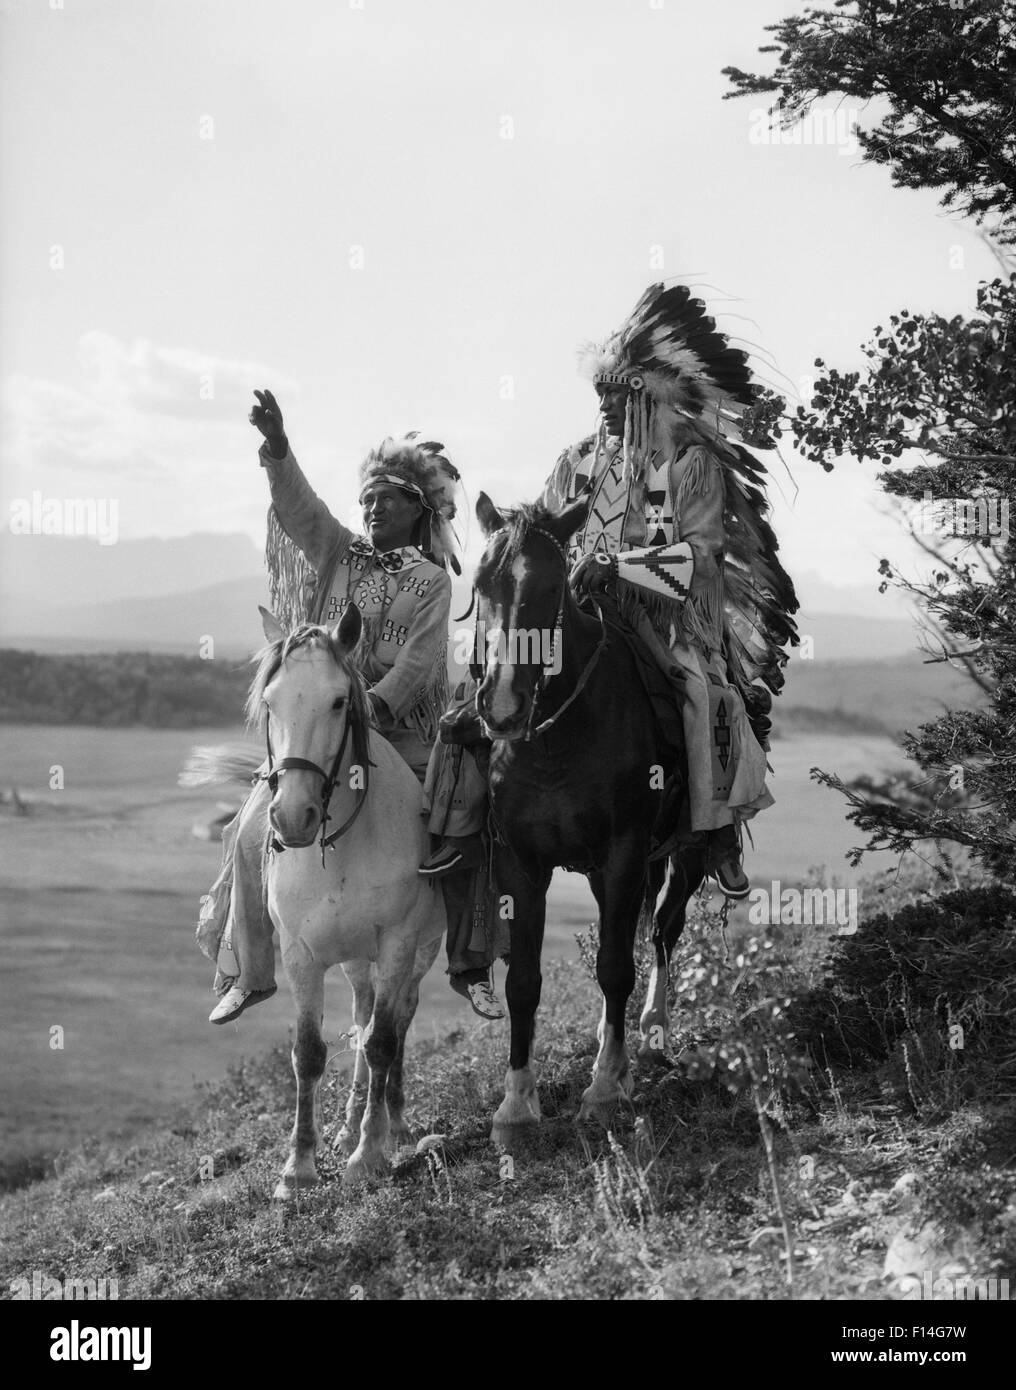 1920s TWO NATIVE AMERICAN INDIAN MEN ON HORSEBACK IN FULL FEATHER HEADDRESS STONEY SIOUX TRIBE ALBERTA CANADA - Stock Image